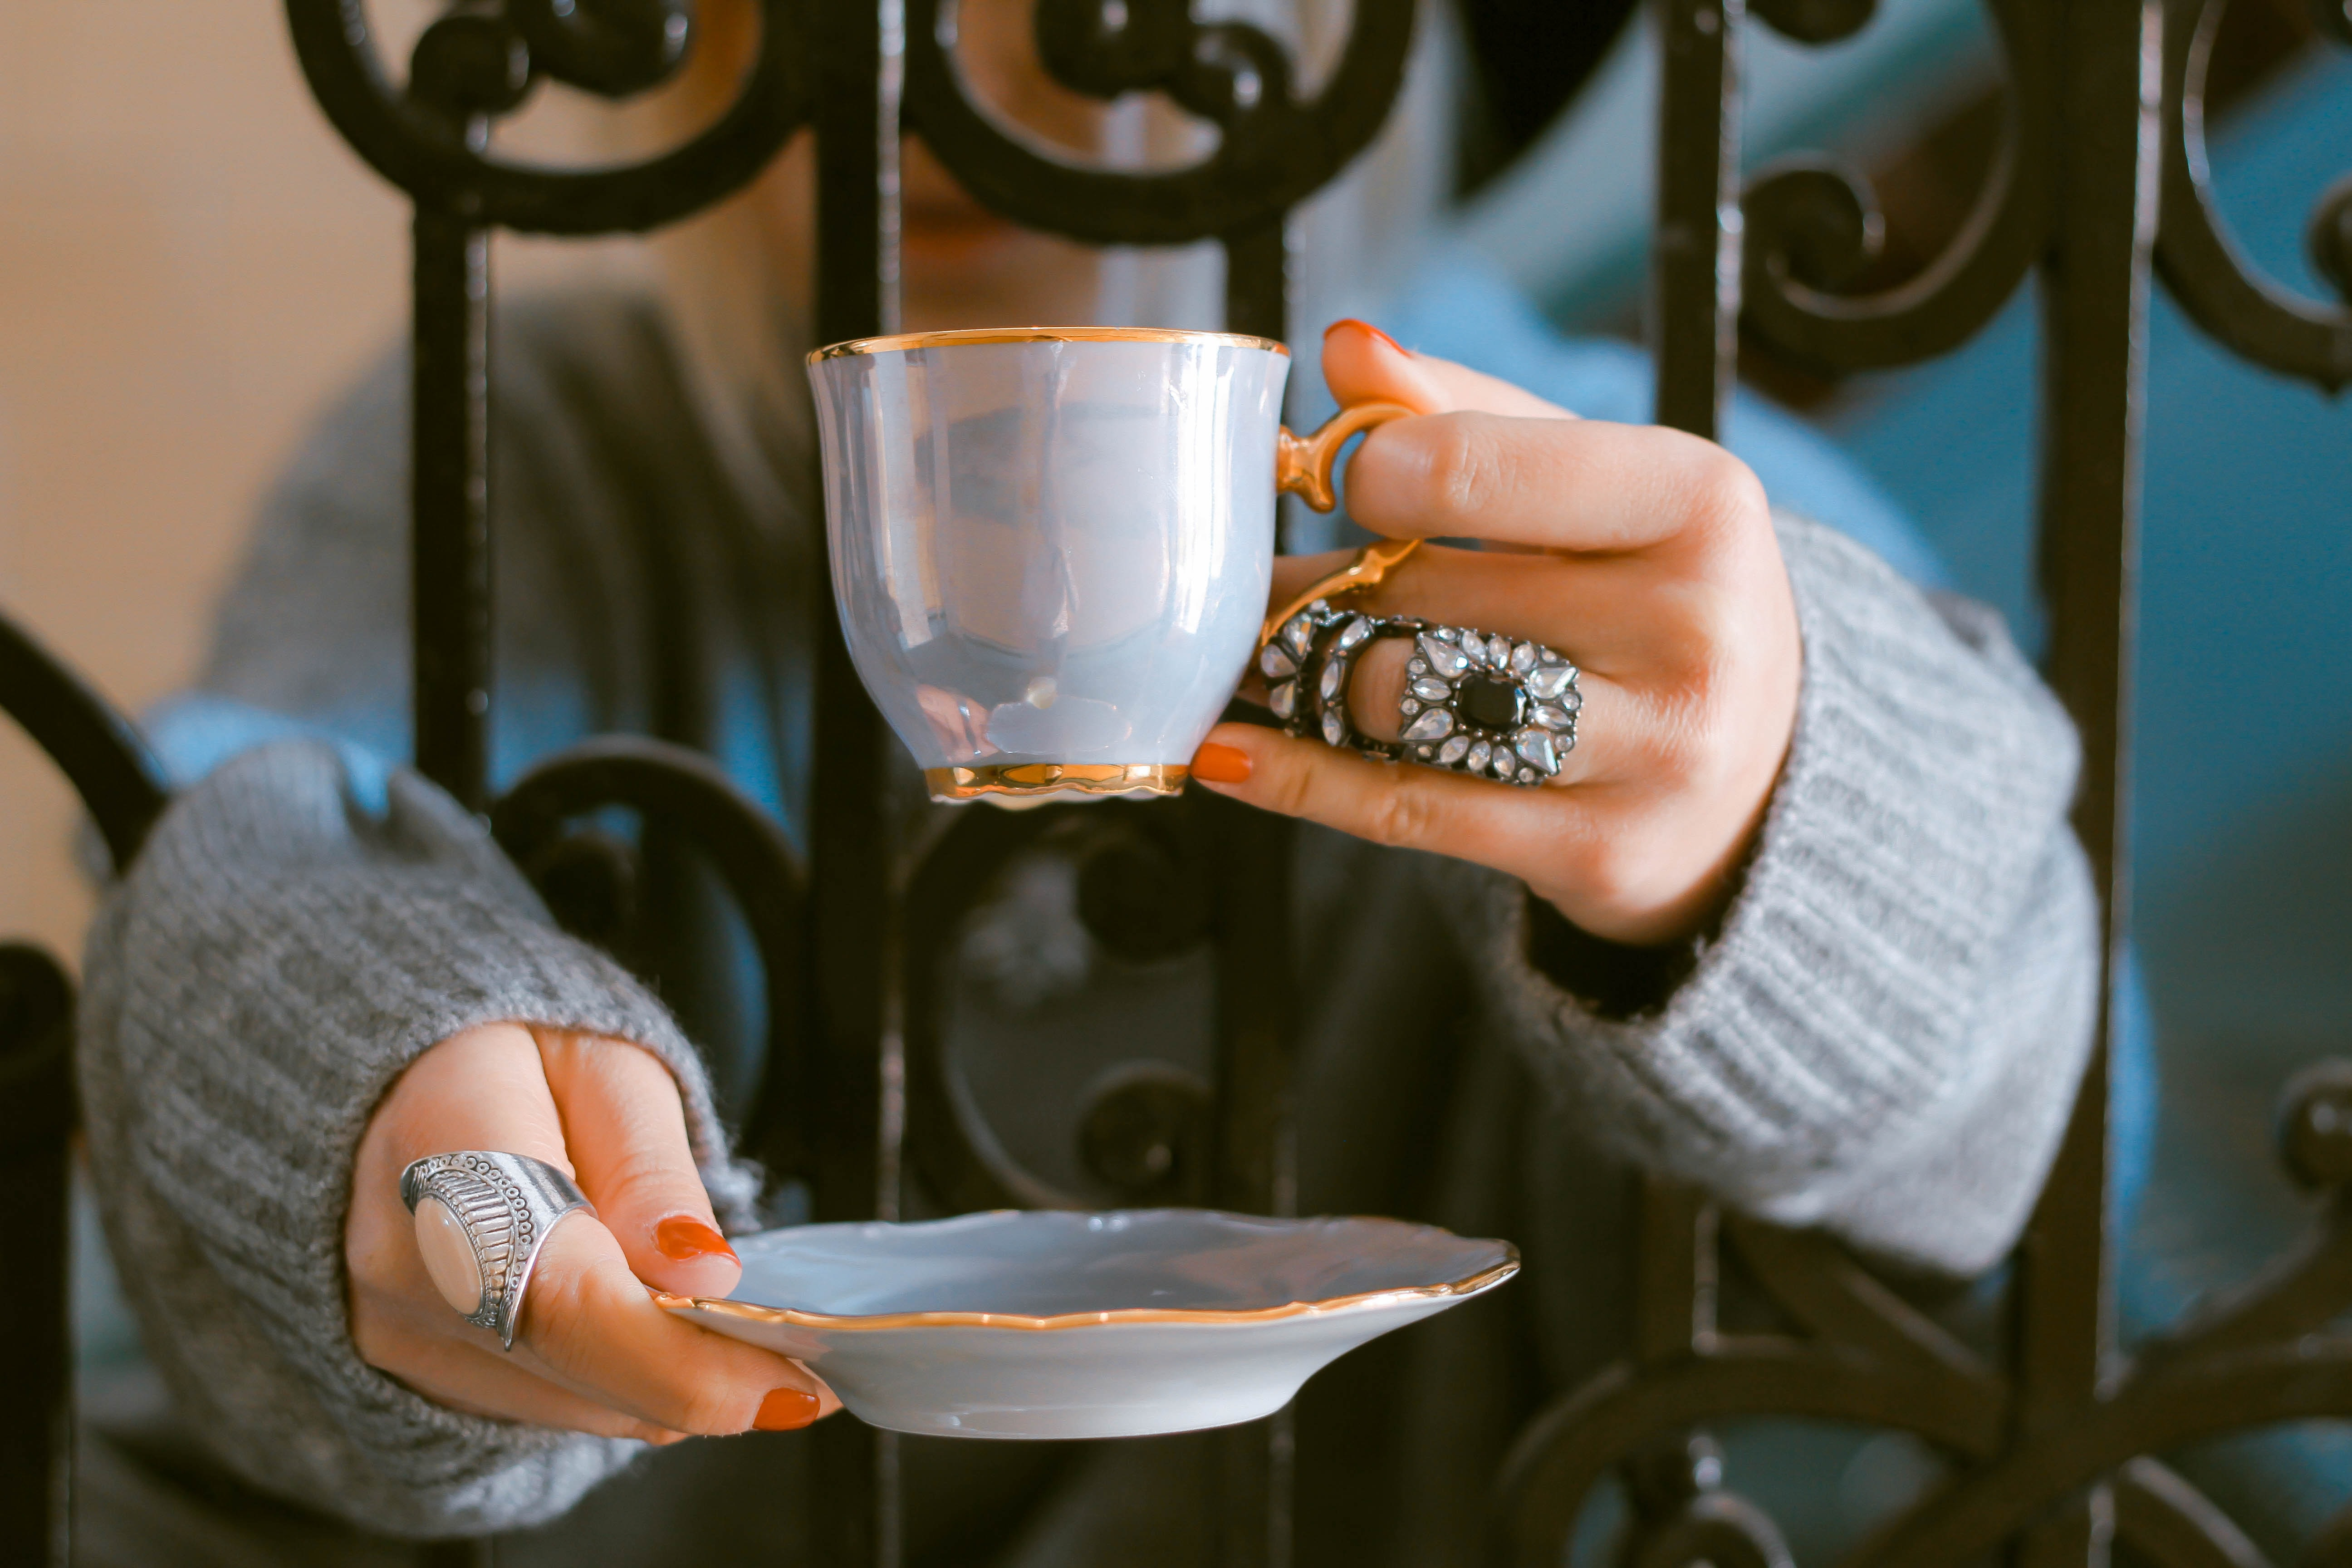 person holding teacup and saucer